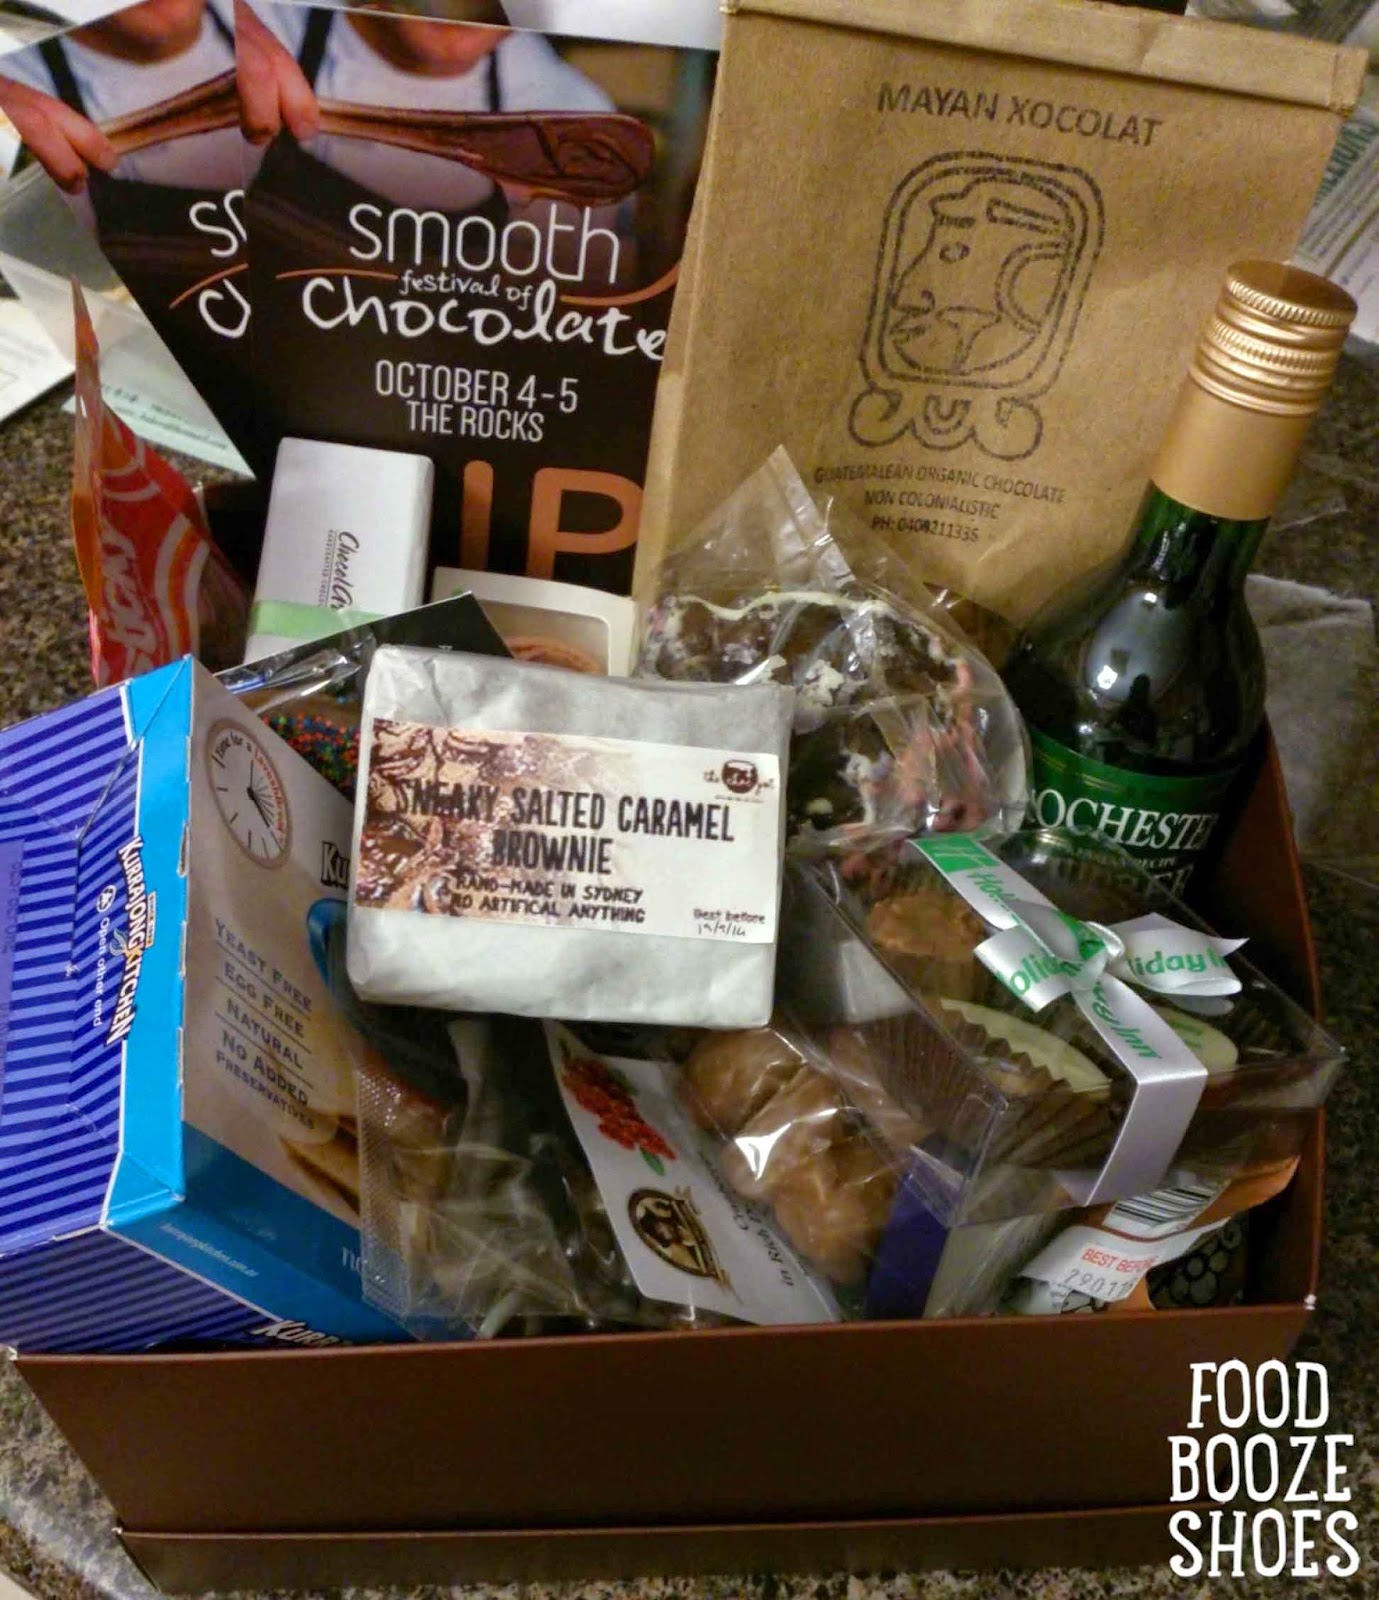 smooth festival of chocolate - next weekend